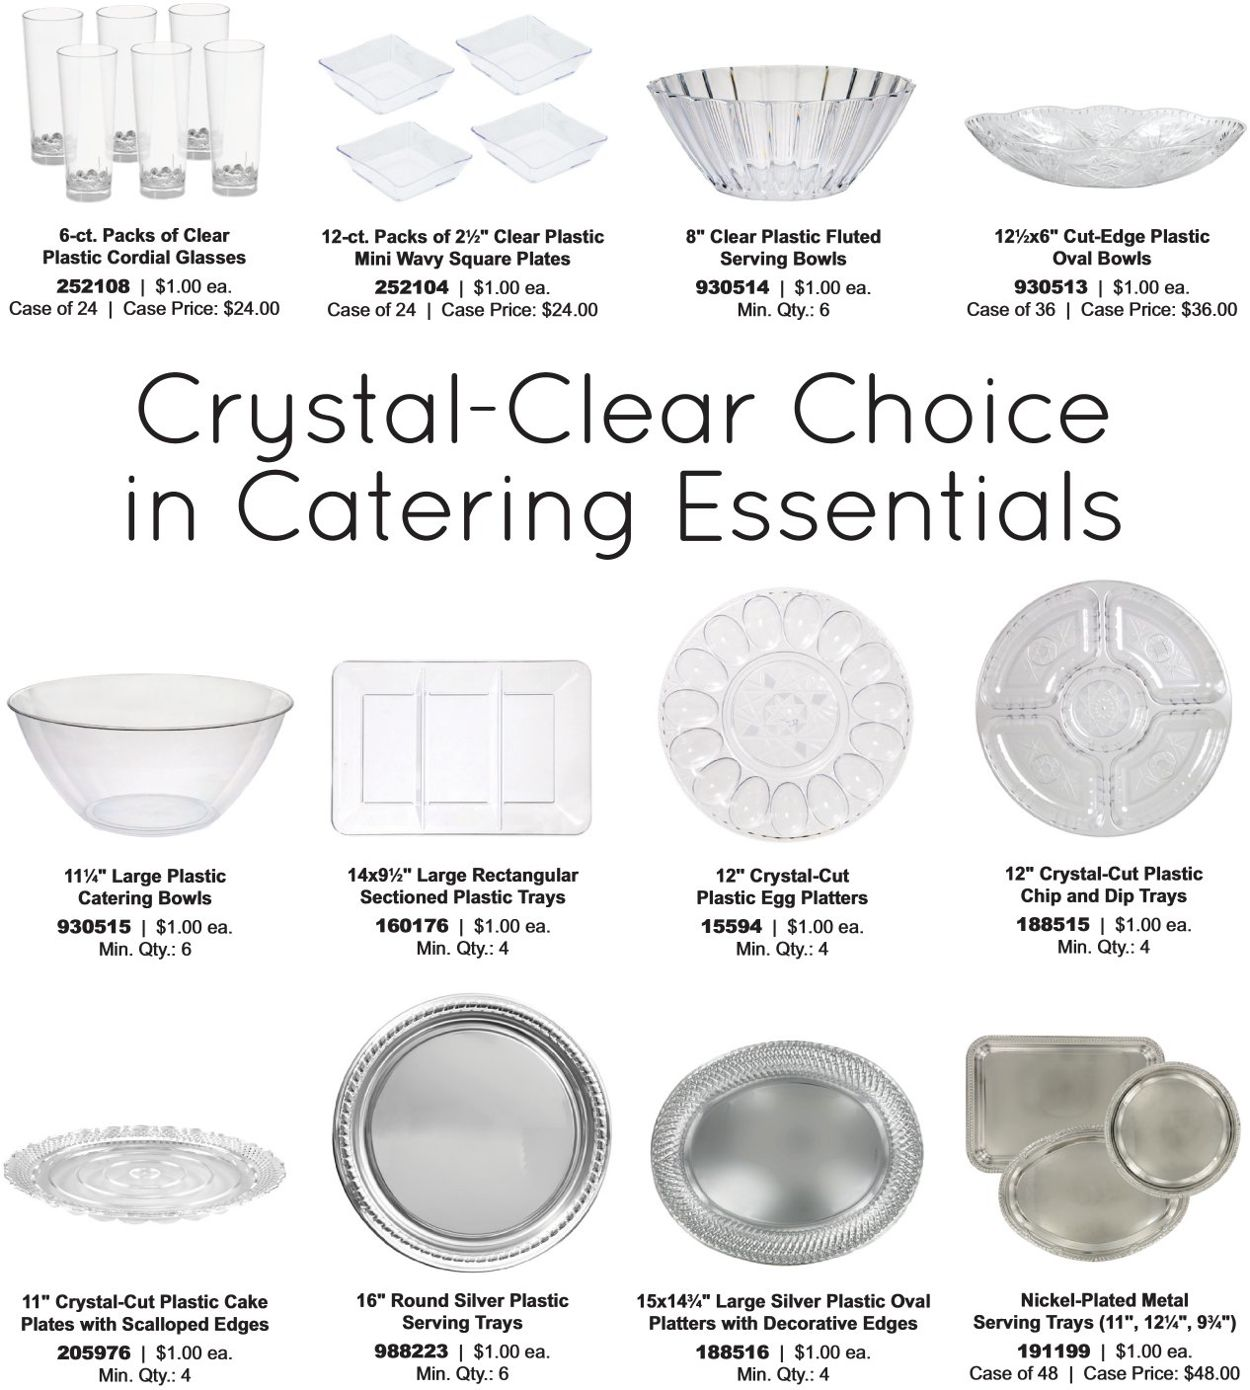 2 6-ct. Packs Clear Plastic Cordial Glasses,